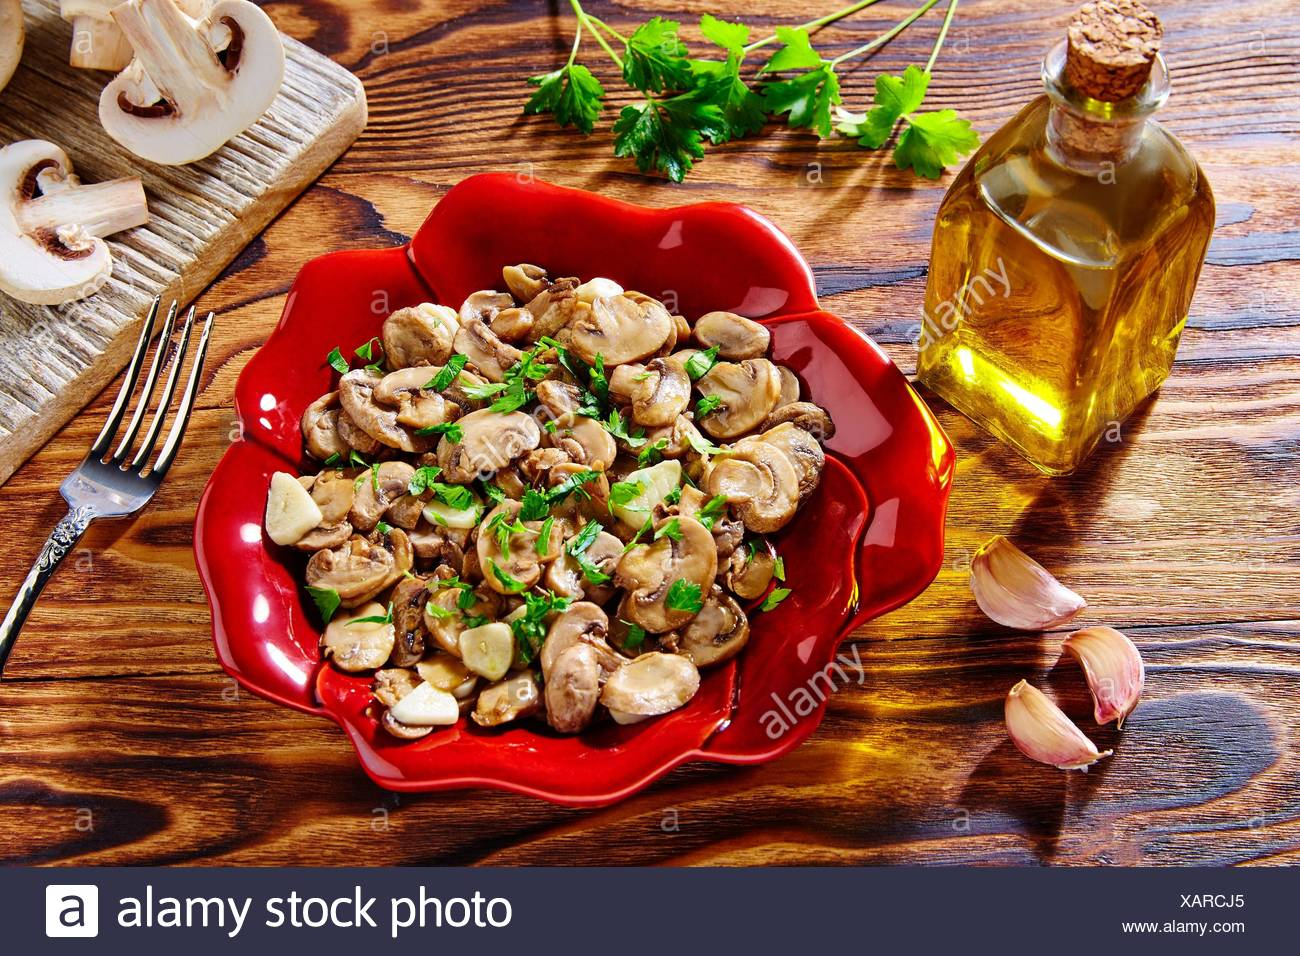 Tapas from Spain champinones garlic mushrooms with potatoes and sausage. - Stock Image